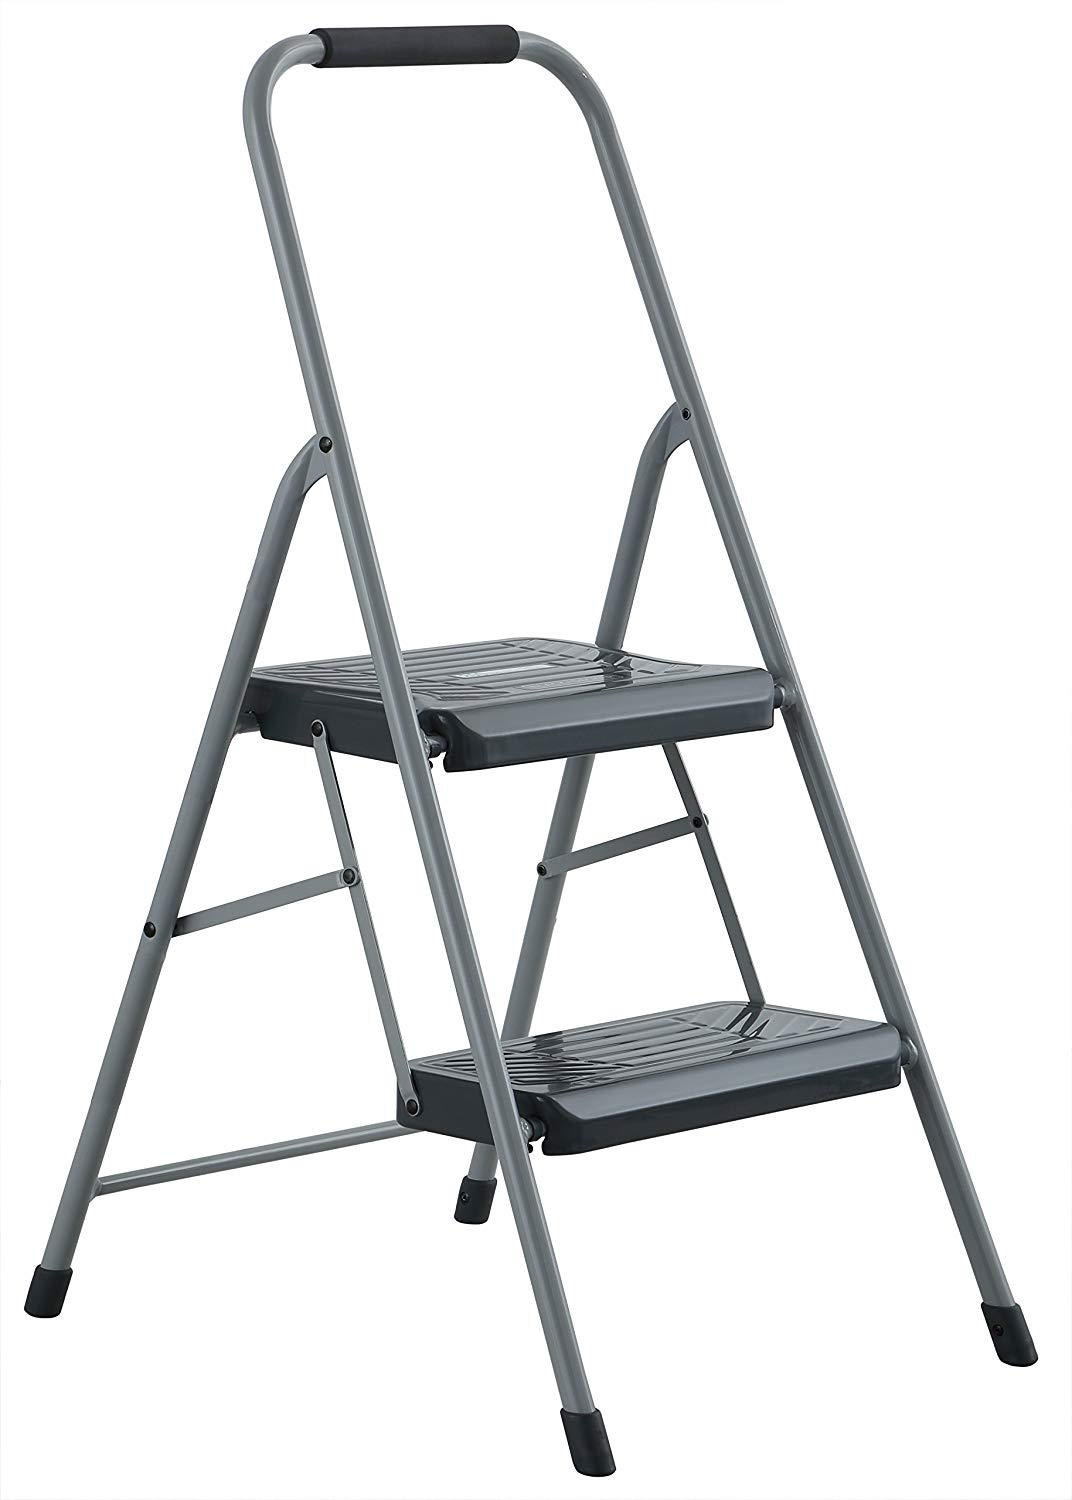 Step Stool - Steel, 2 step